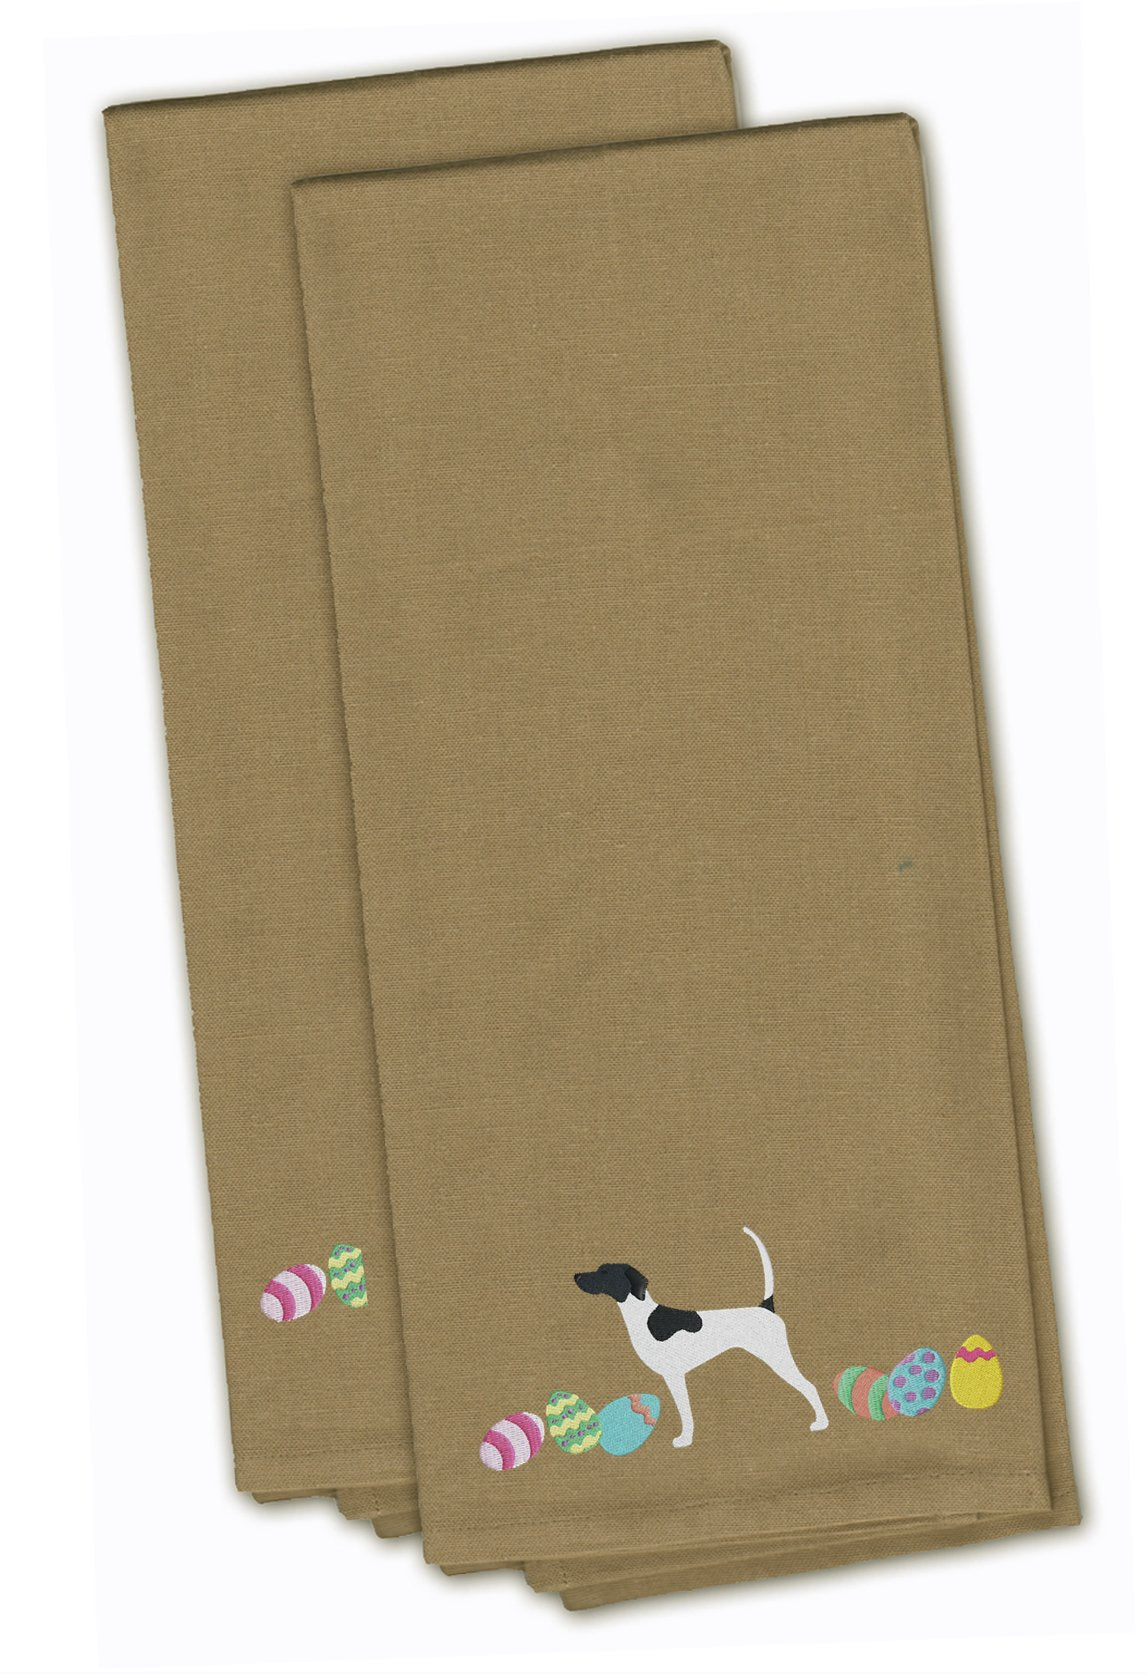 English Pointer Easter Tan Embroidered Kitchen Towel Set of 2 CK1639TNTWE by Caroline's Treasures